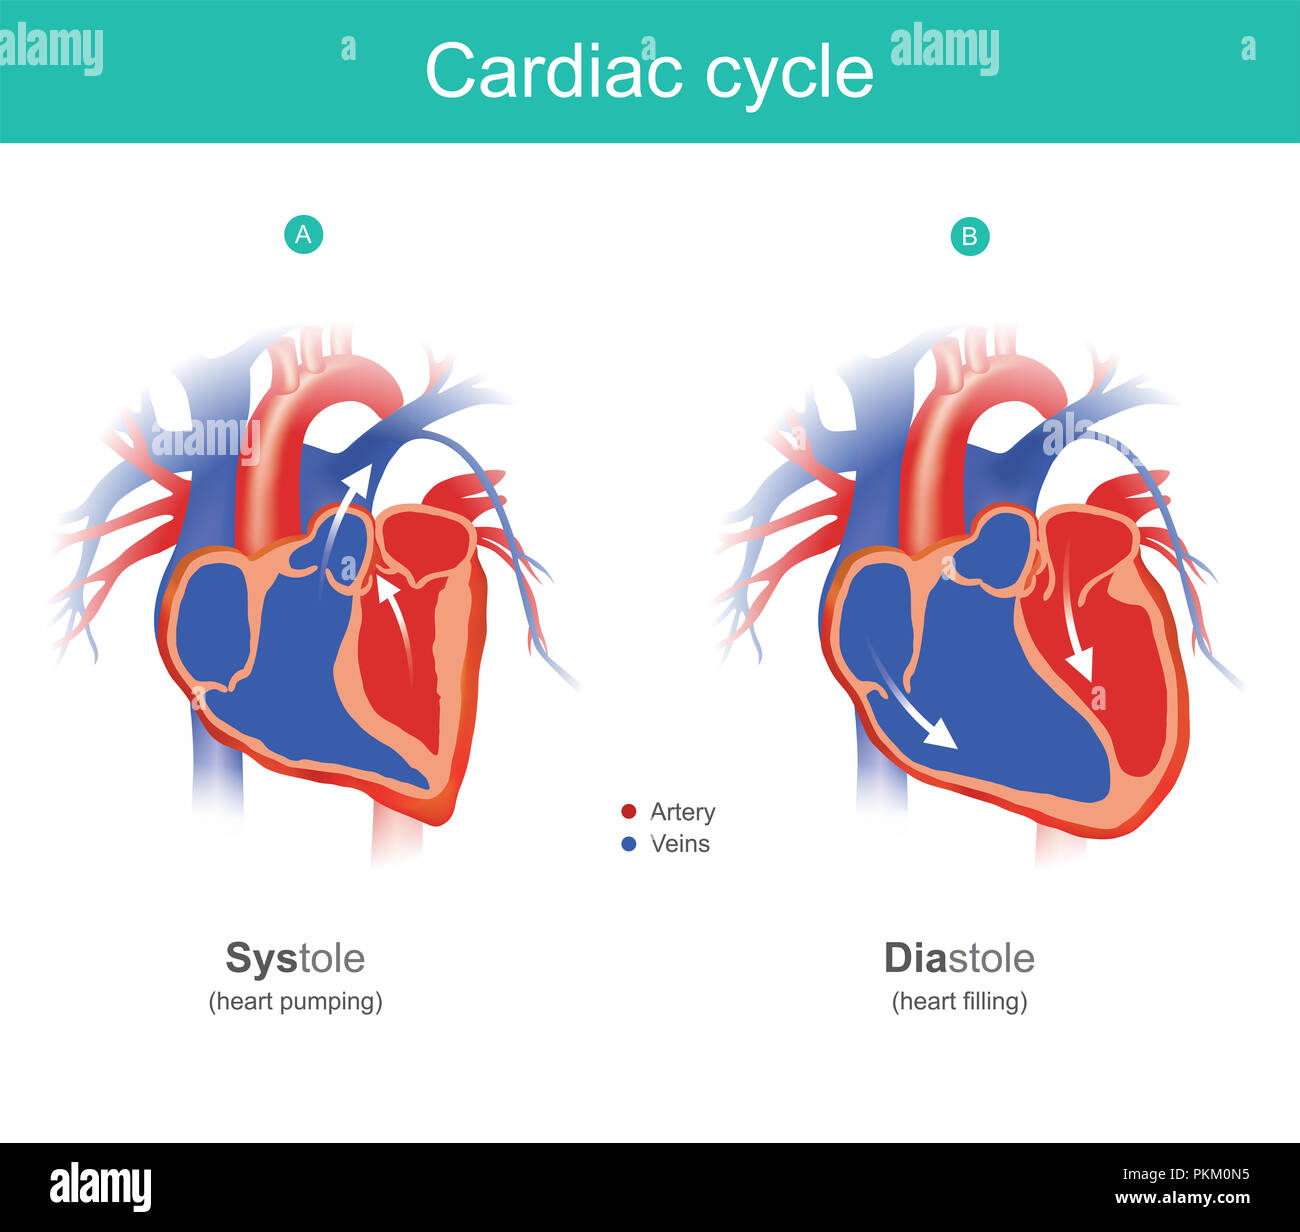 The Heart Is The Organ Of The Human Body That Pumps Blood